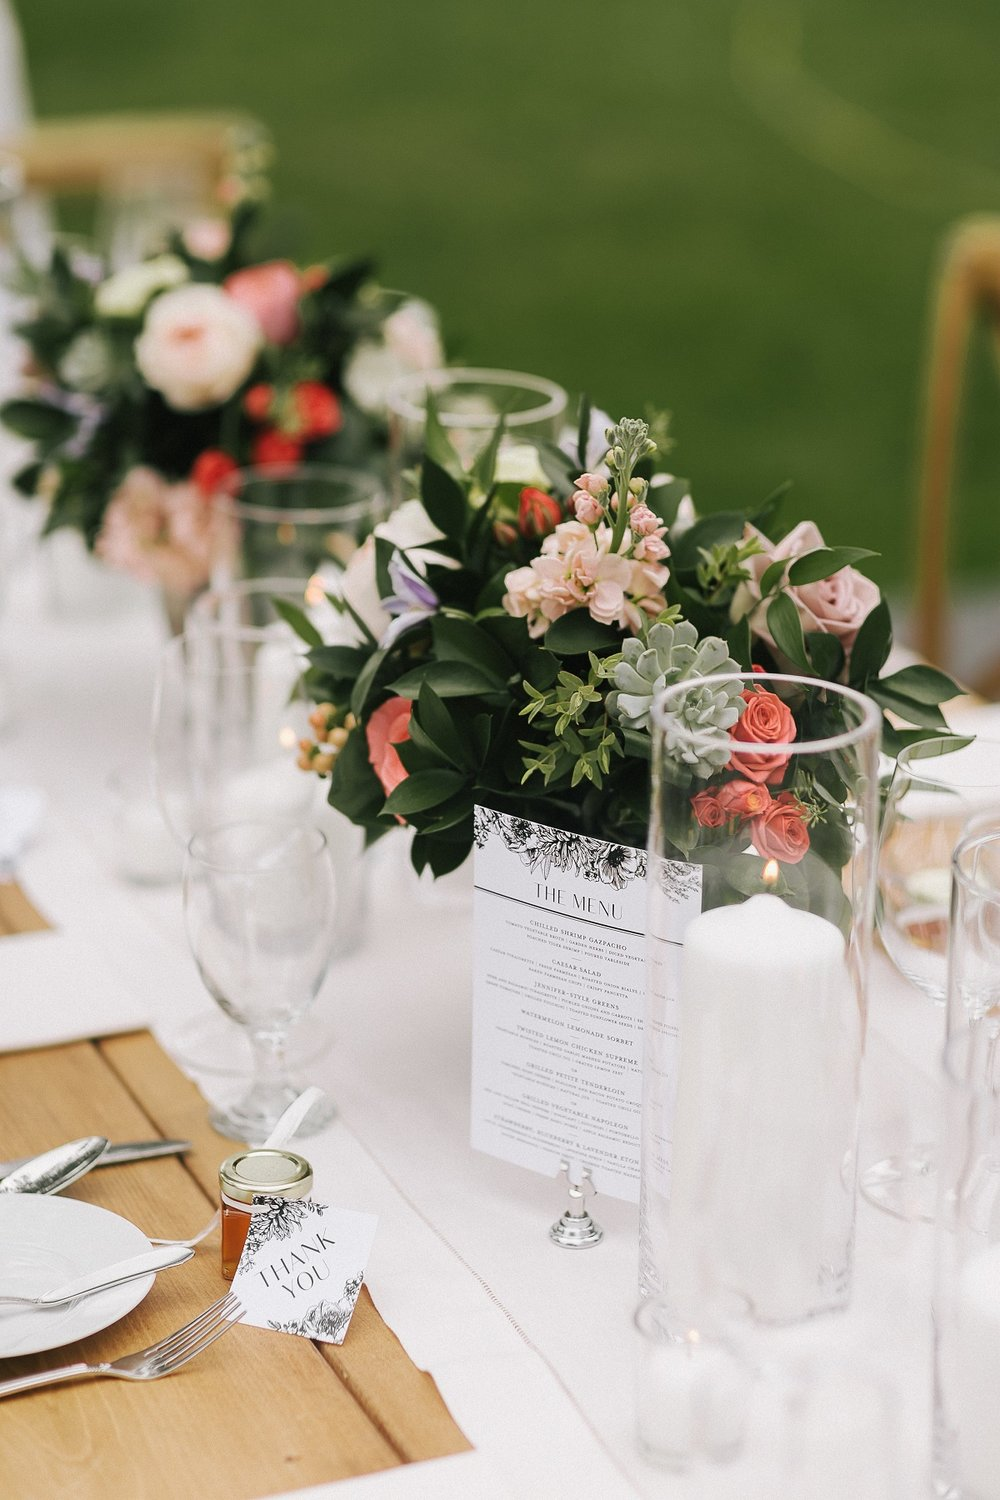 tented-wedding-planner-ancaster-kj-and-co 26.JPG